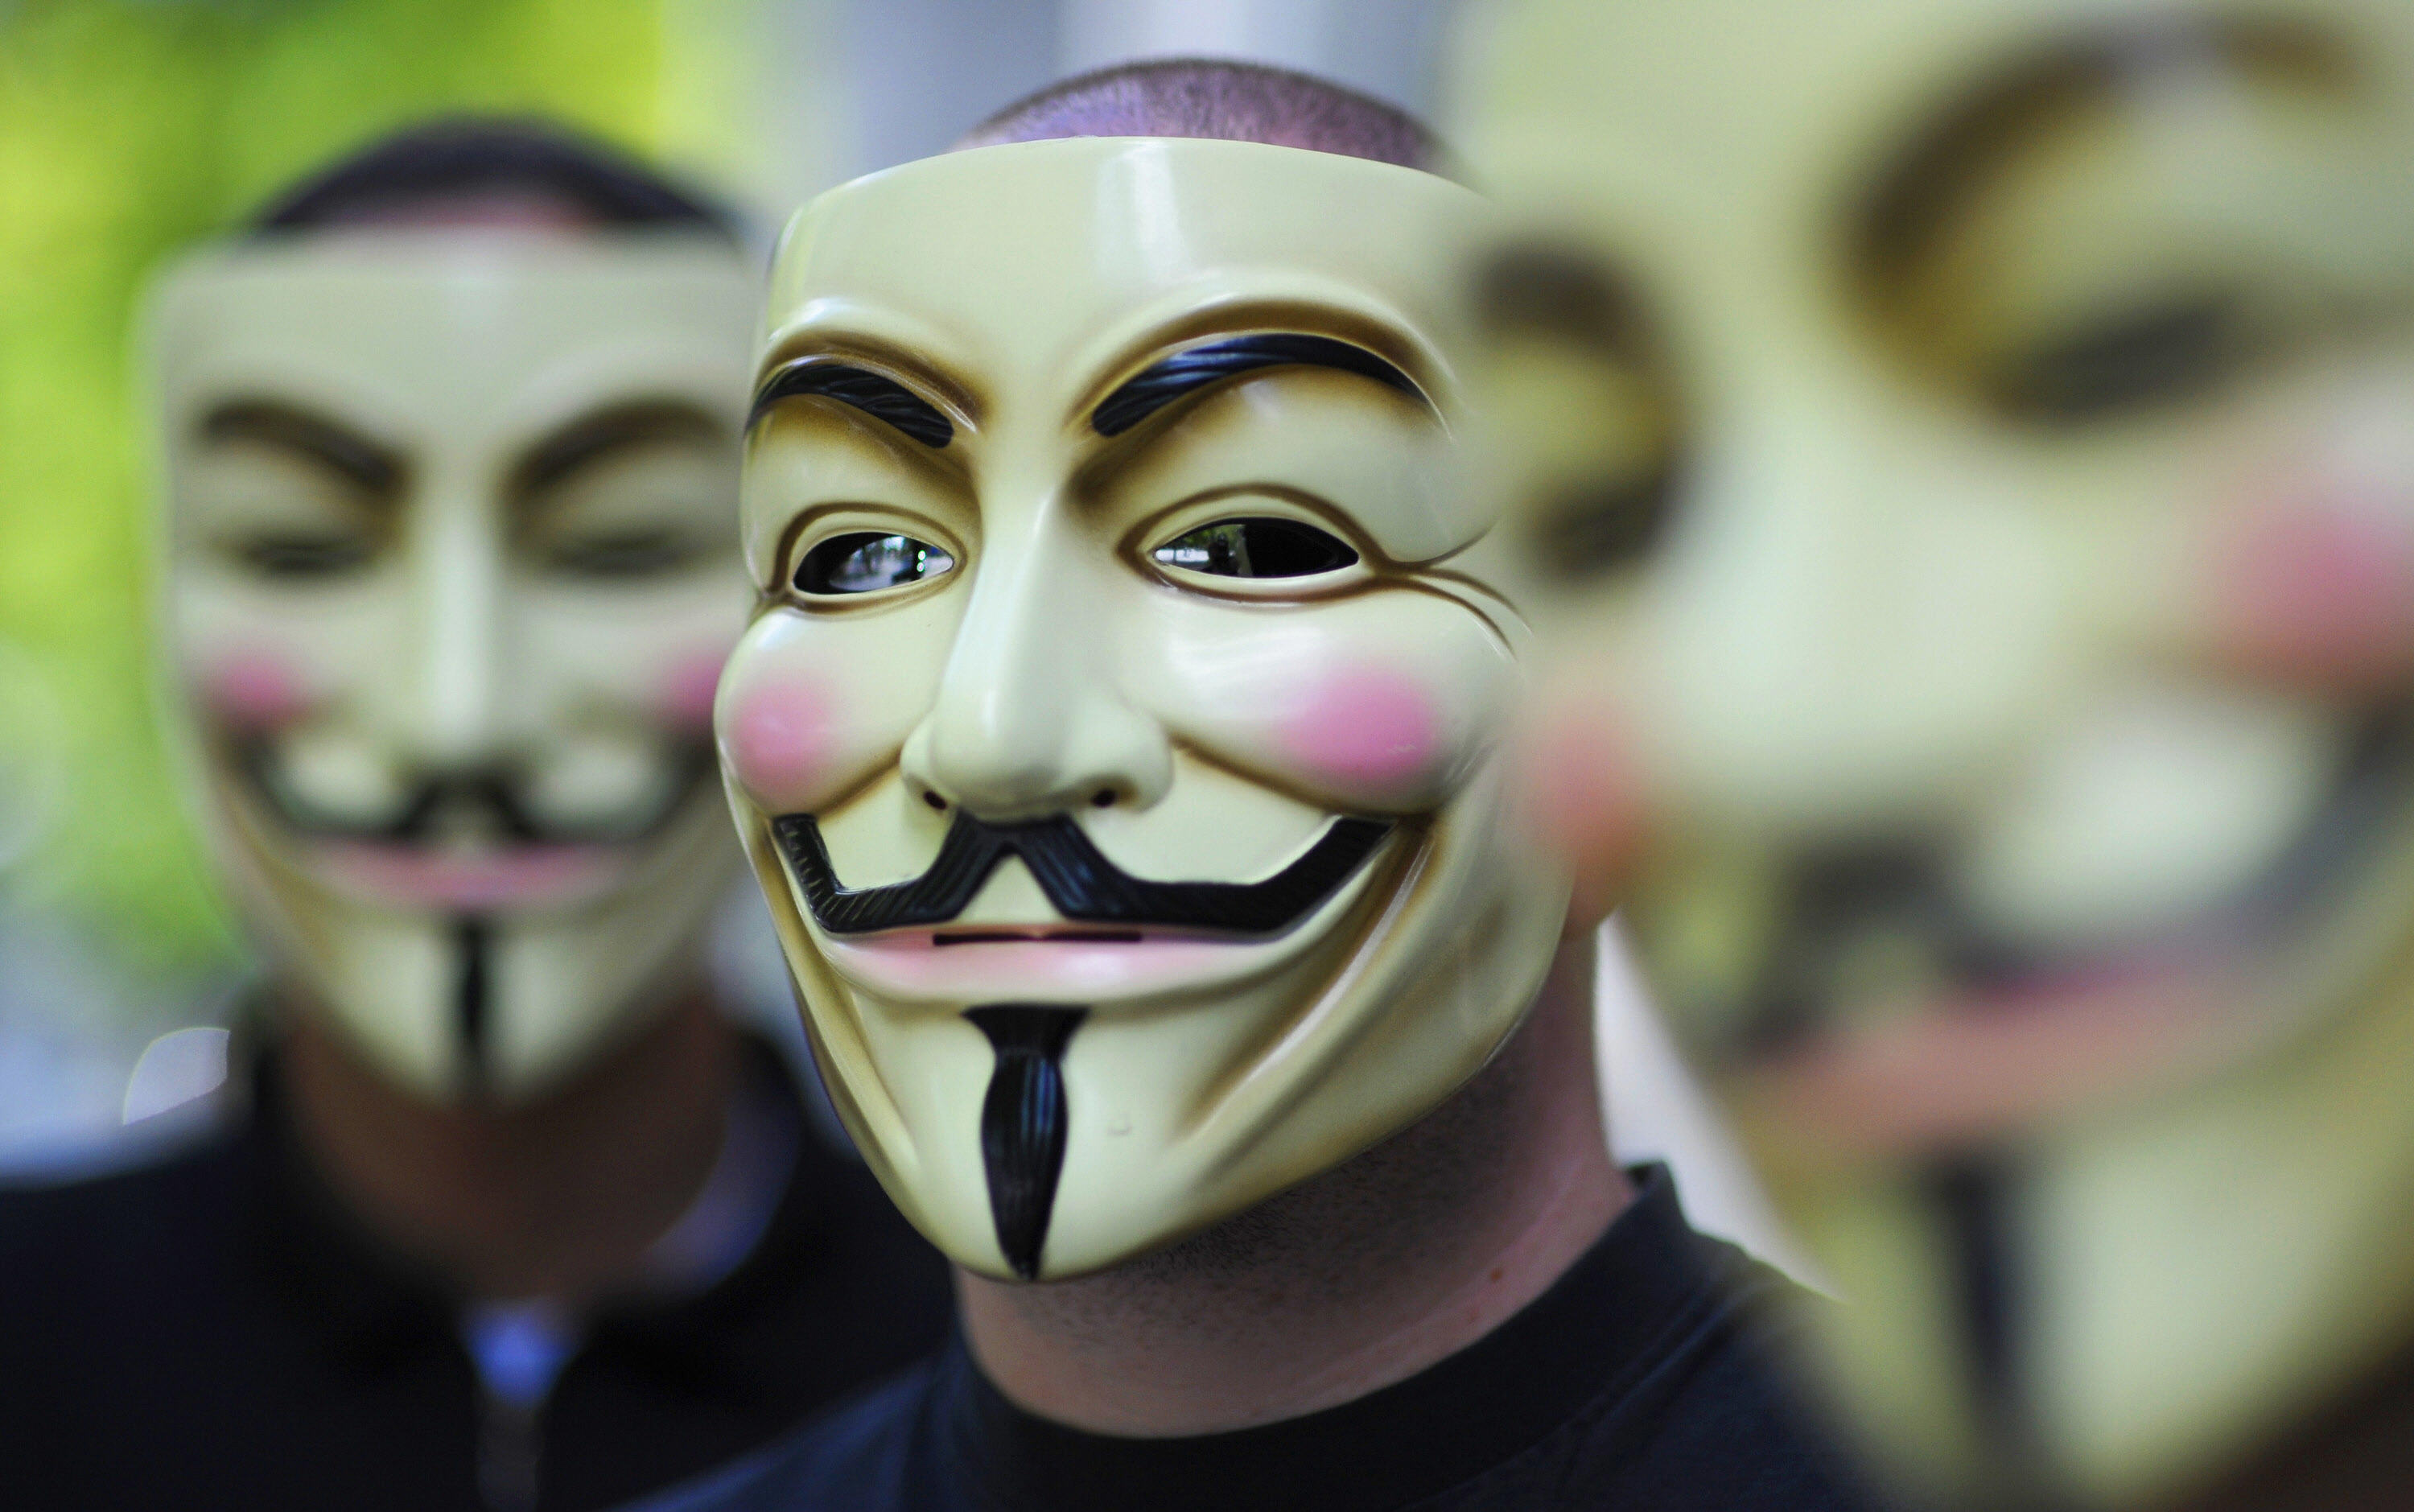 The problems with anonymous trolls and accountability in the digital age